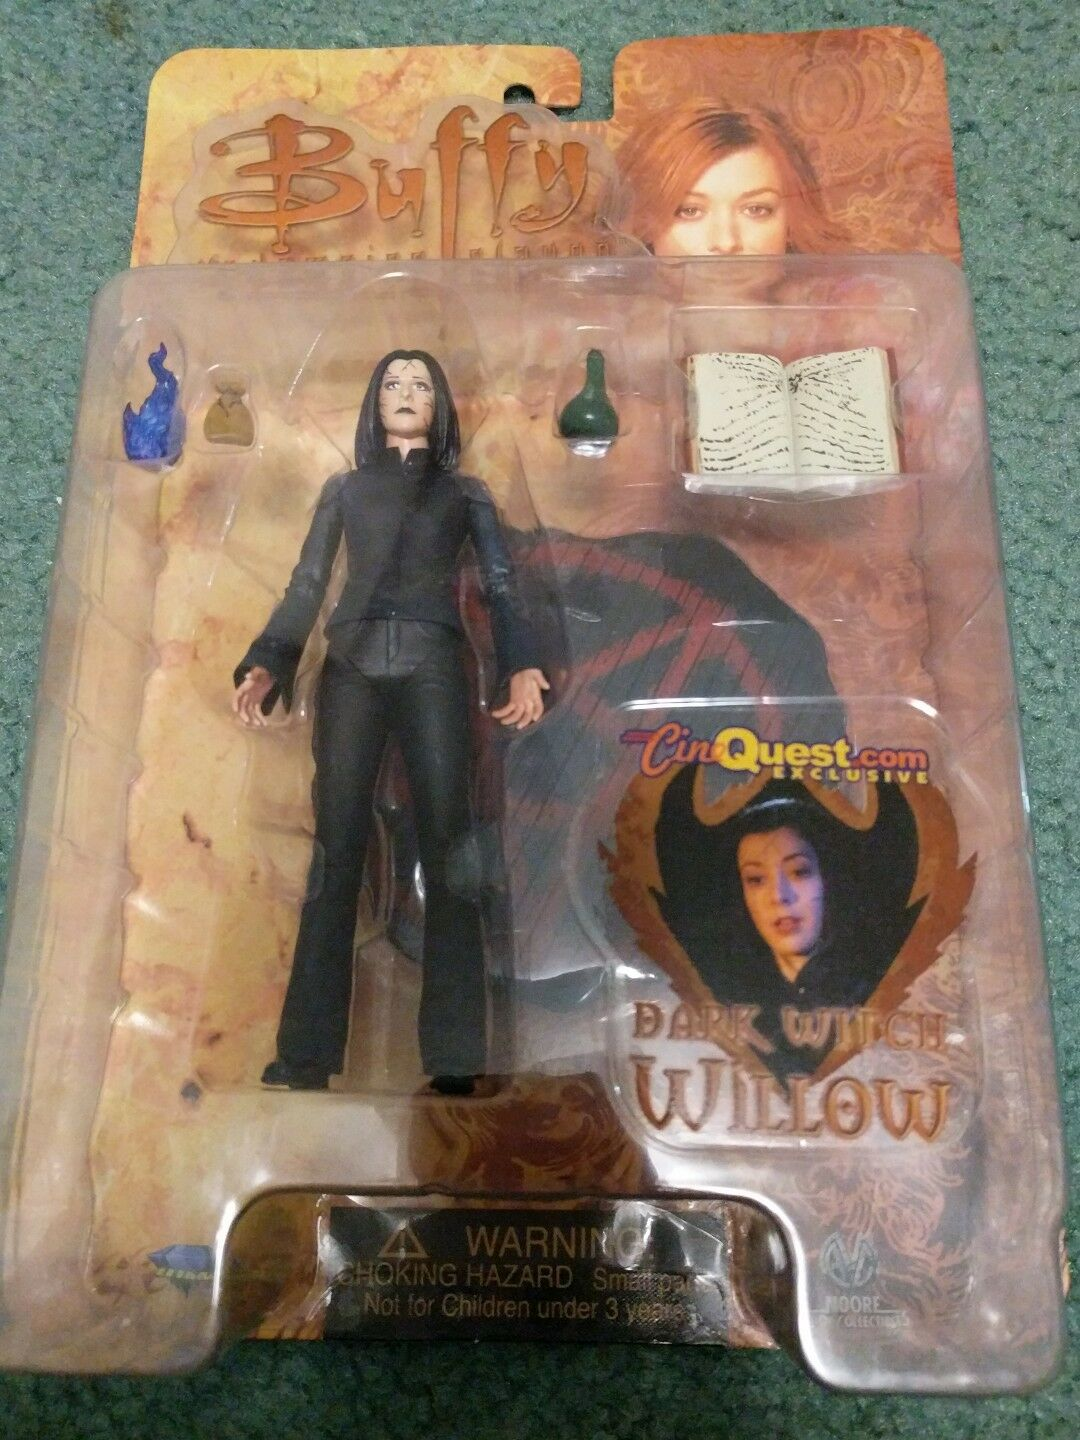 Buffy the Vampire Slayer Dark Witch Willow CineQuest  SDCC exclusive figure